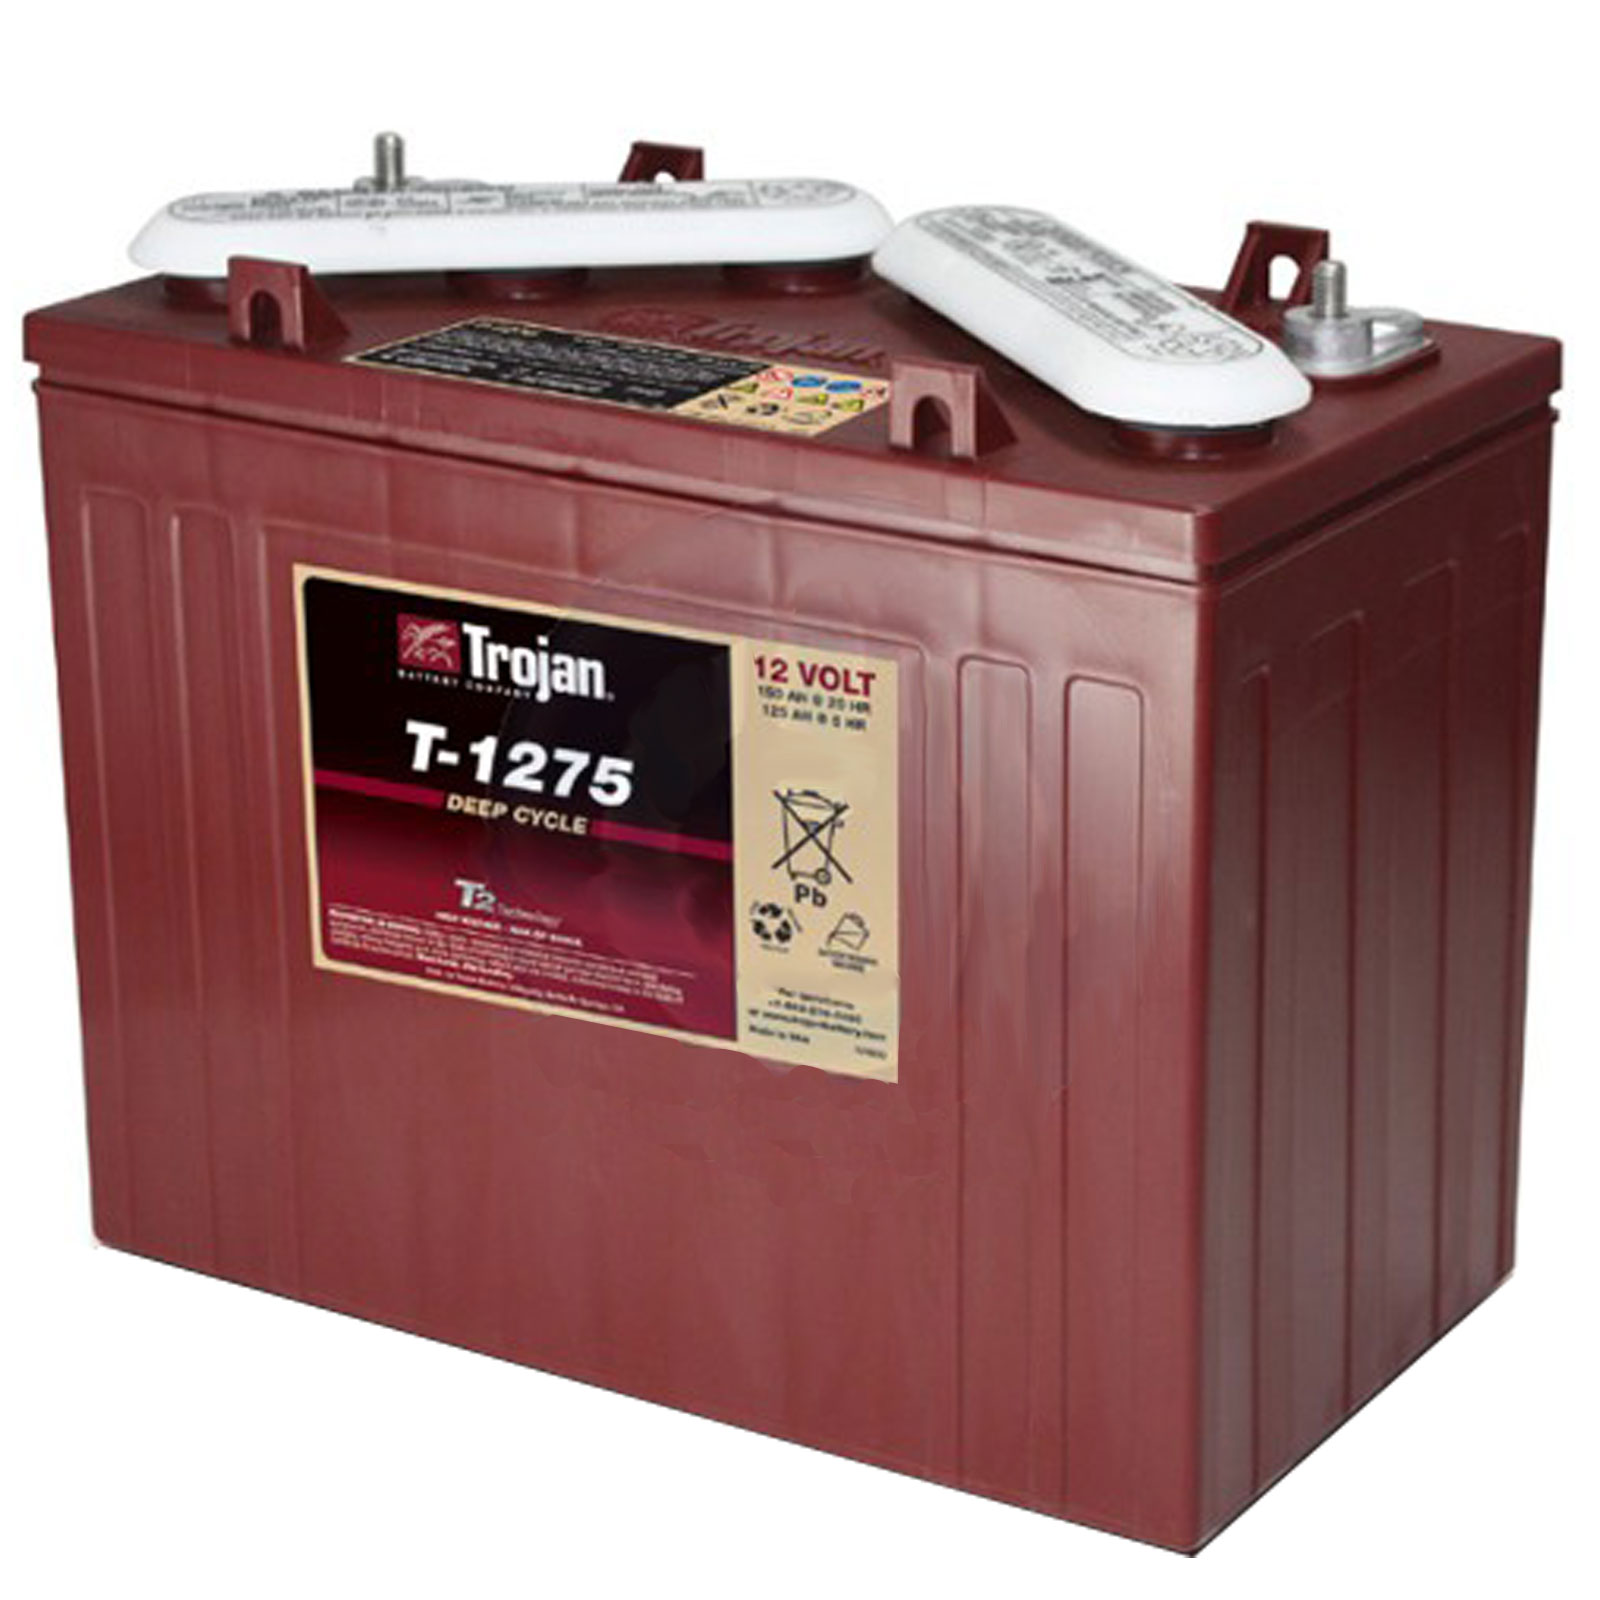 Trojan T-1275 12V 150Ah Deep Cycle Flooded Lead Acid Golf Cart Battery